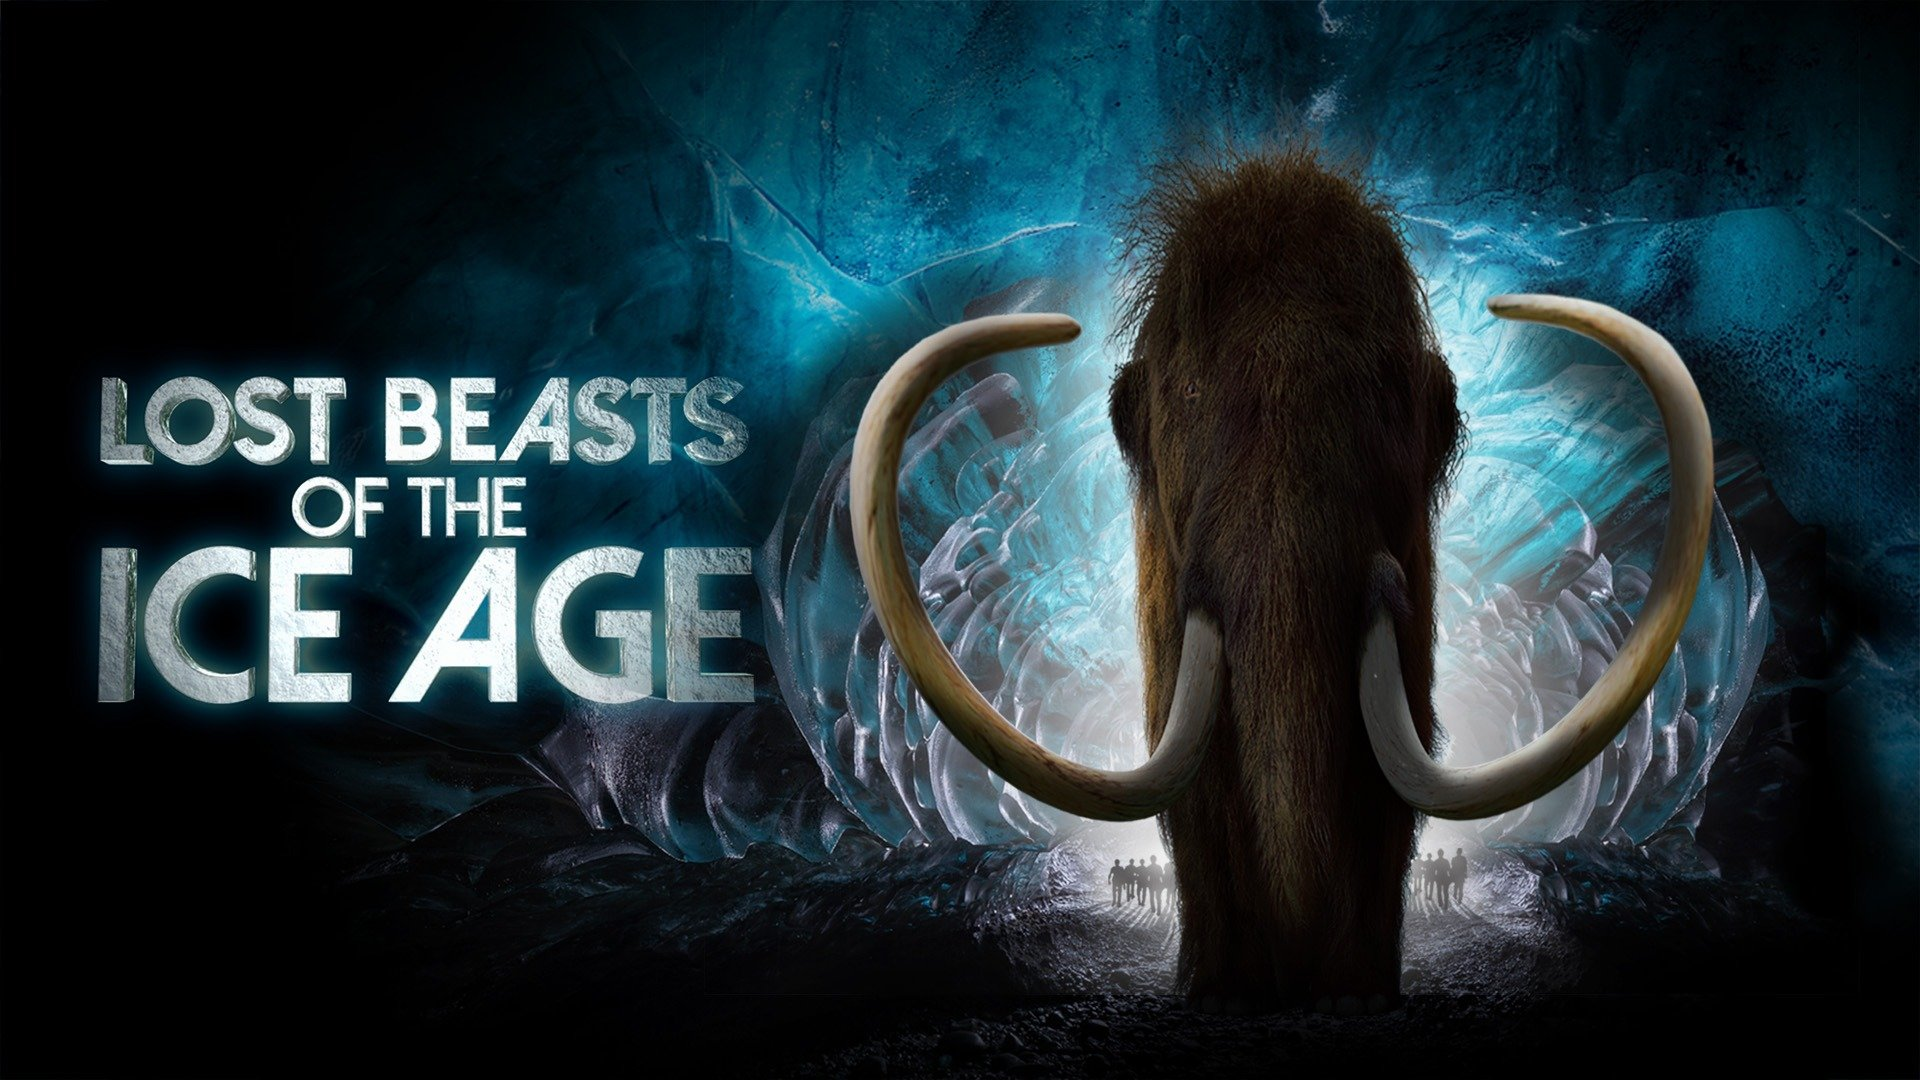 Lost Beasts of the Ice Age